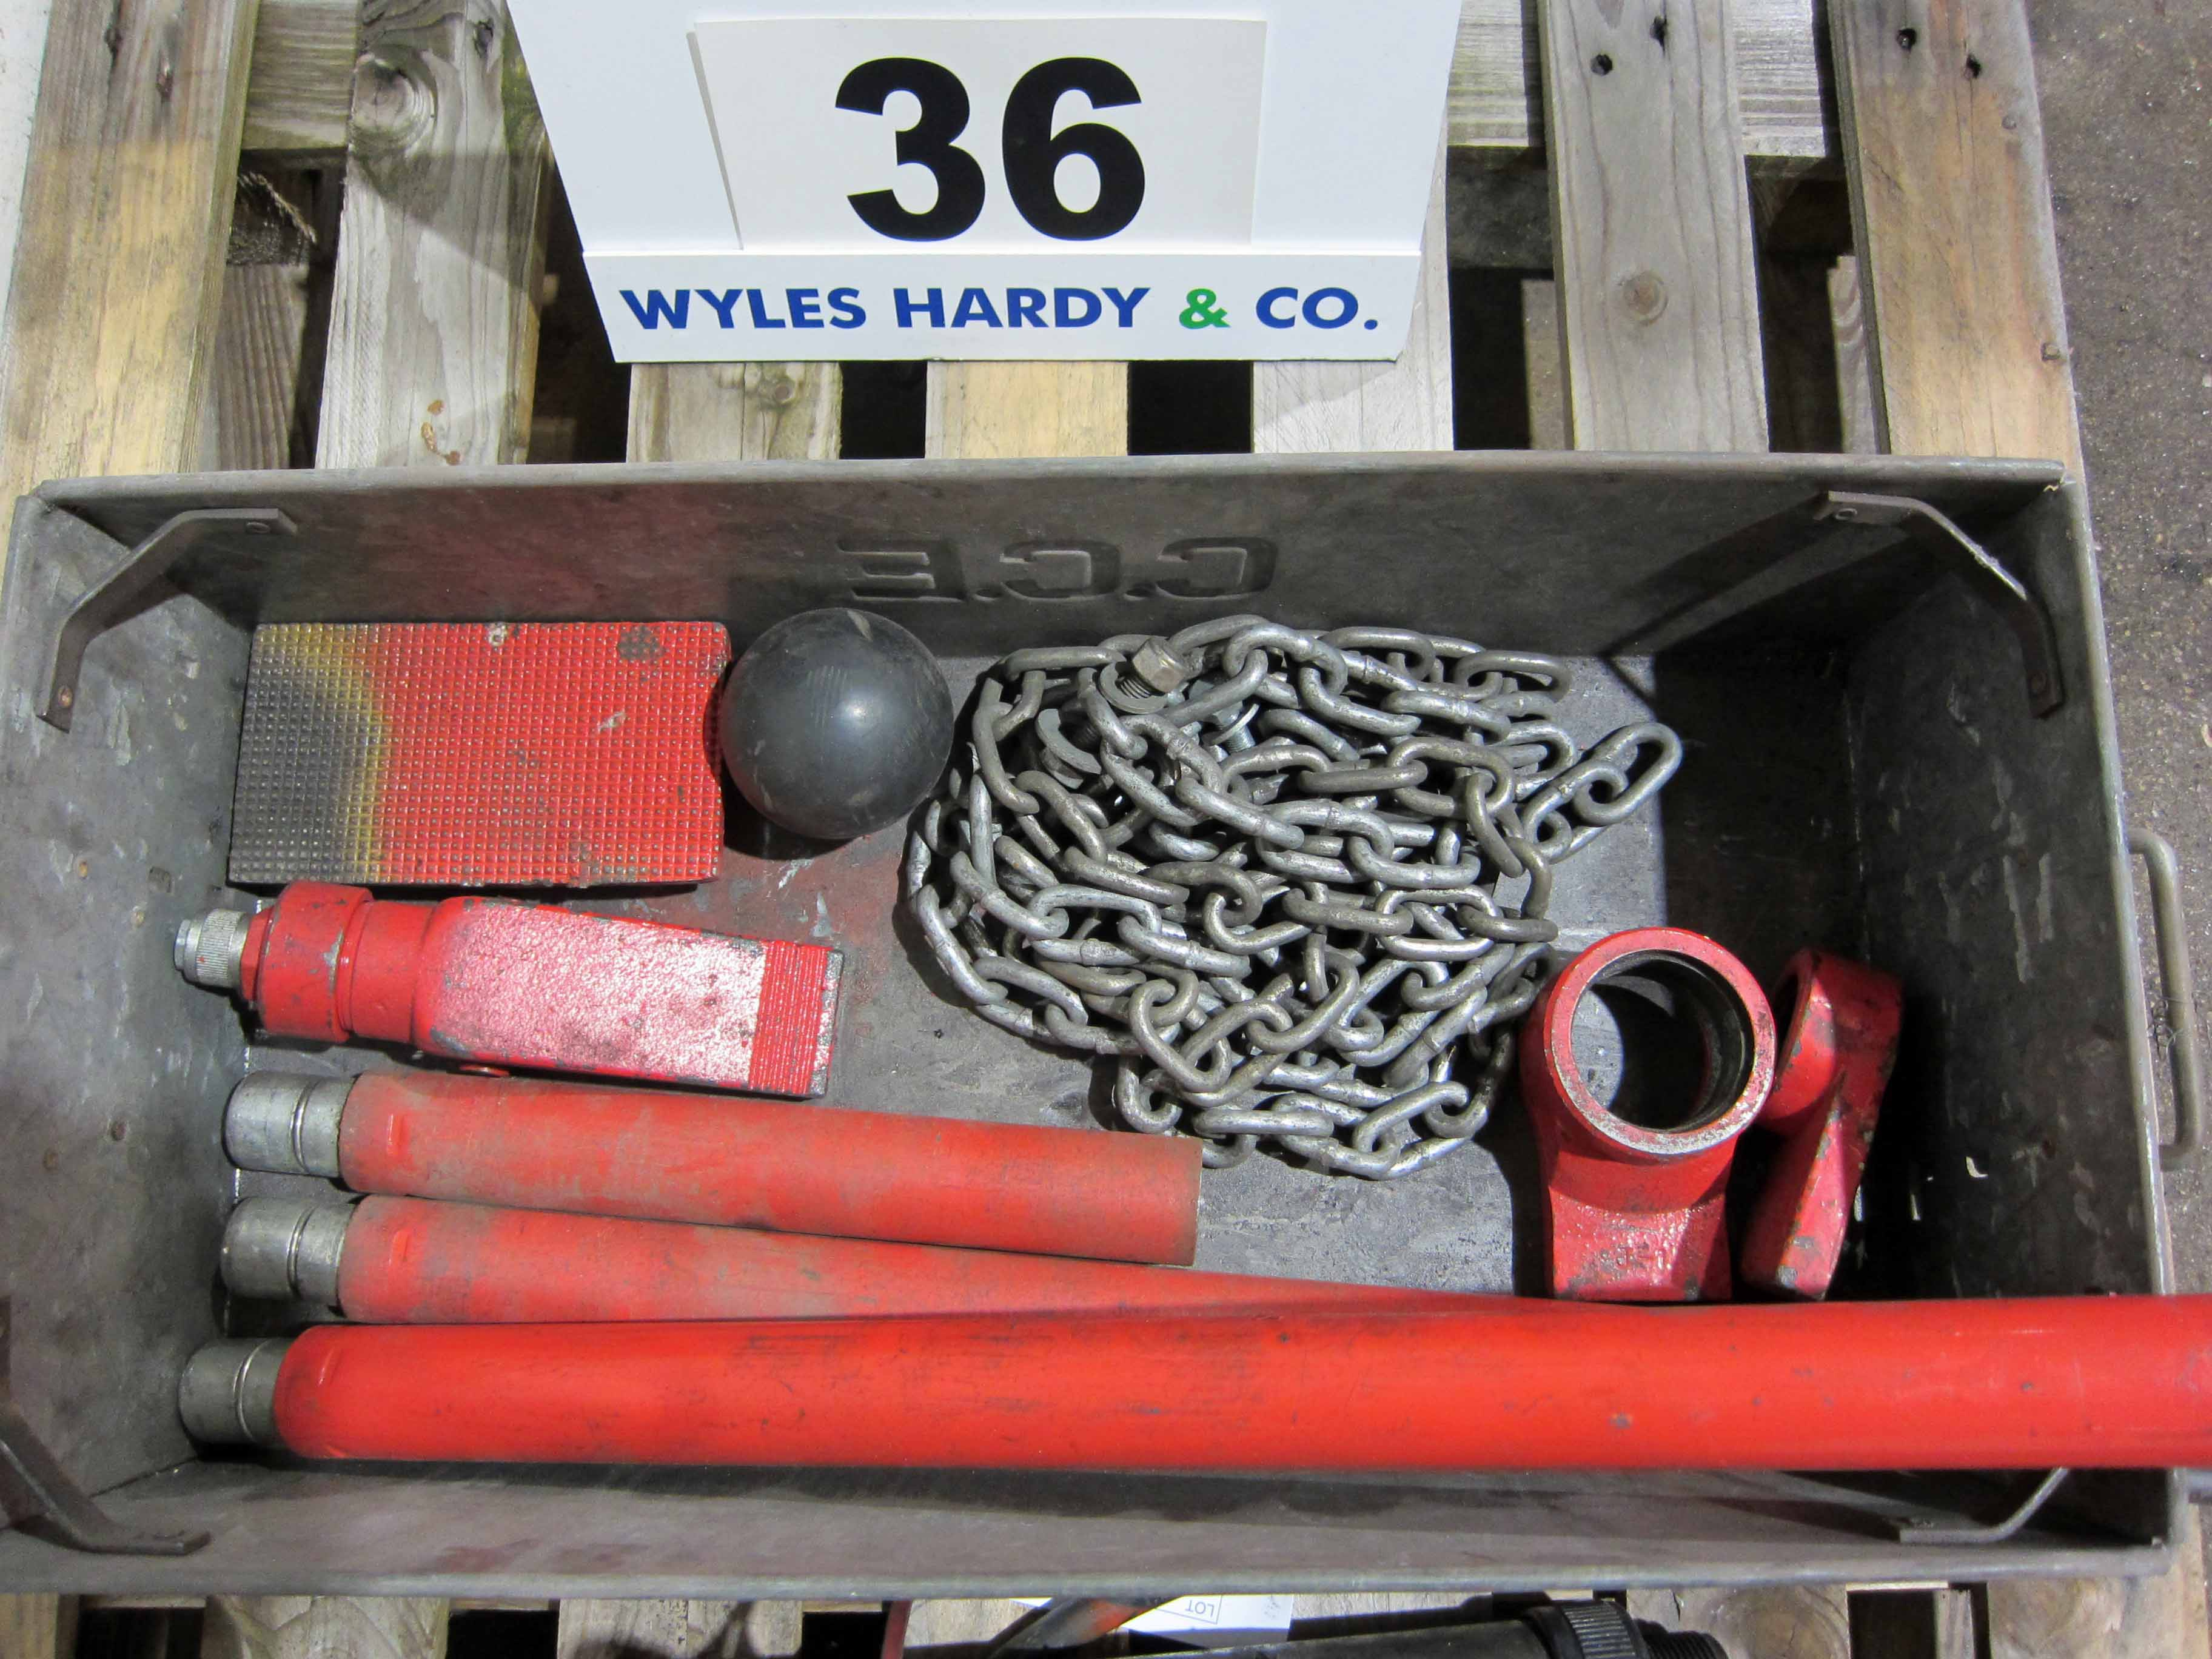 A SEALEY Super Snap 10-Ton Manual Hydraulic Ram System and Associated Fittings, Chains, etc. - Image 4 of 4